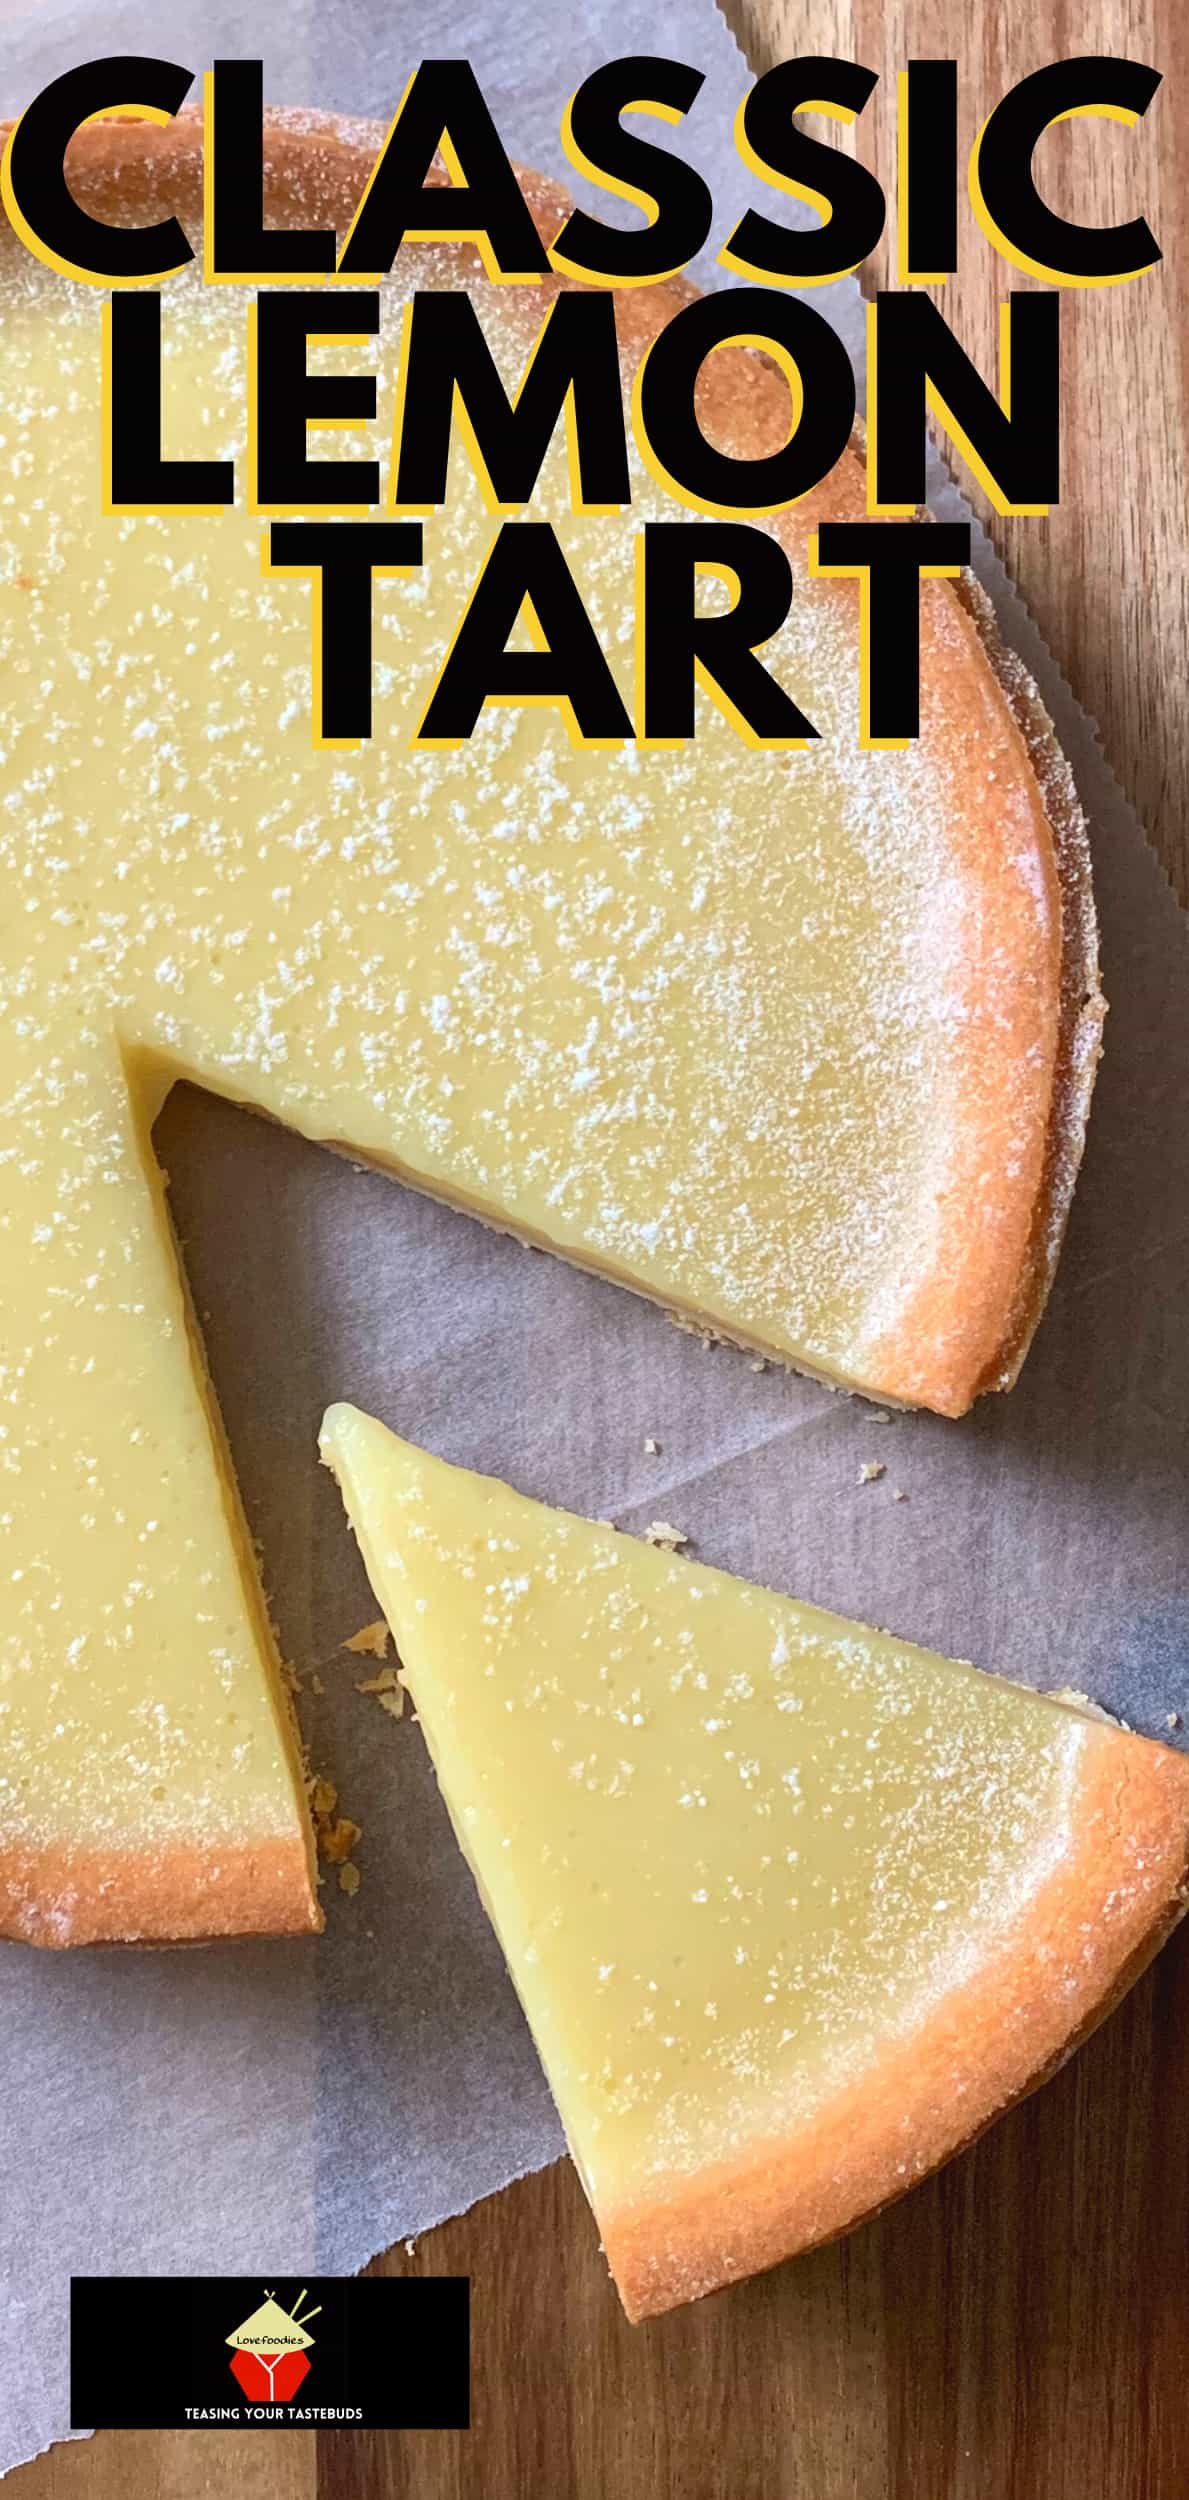 Classic Lemon Tart, Tarte Au Citron. A delicious tangy lemon tart, made from scratch using buttery pastry and filled with a creamy rich fresh lemon filling